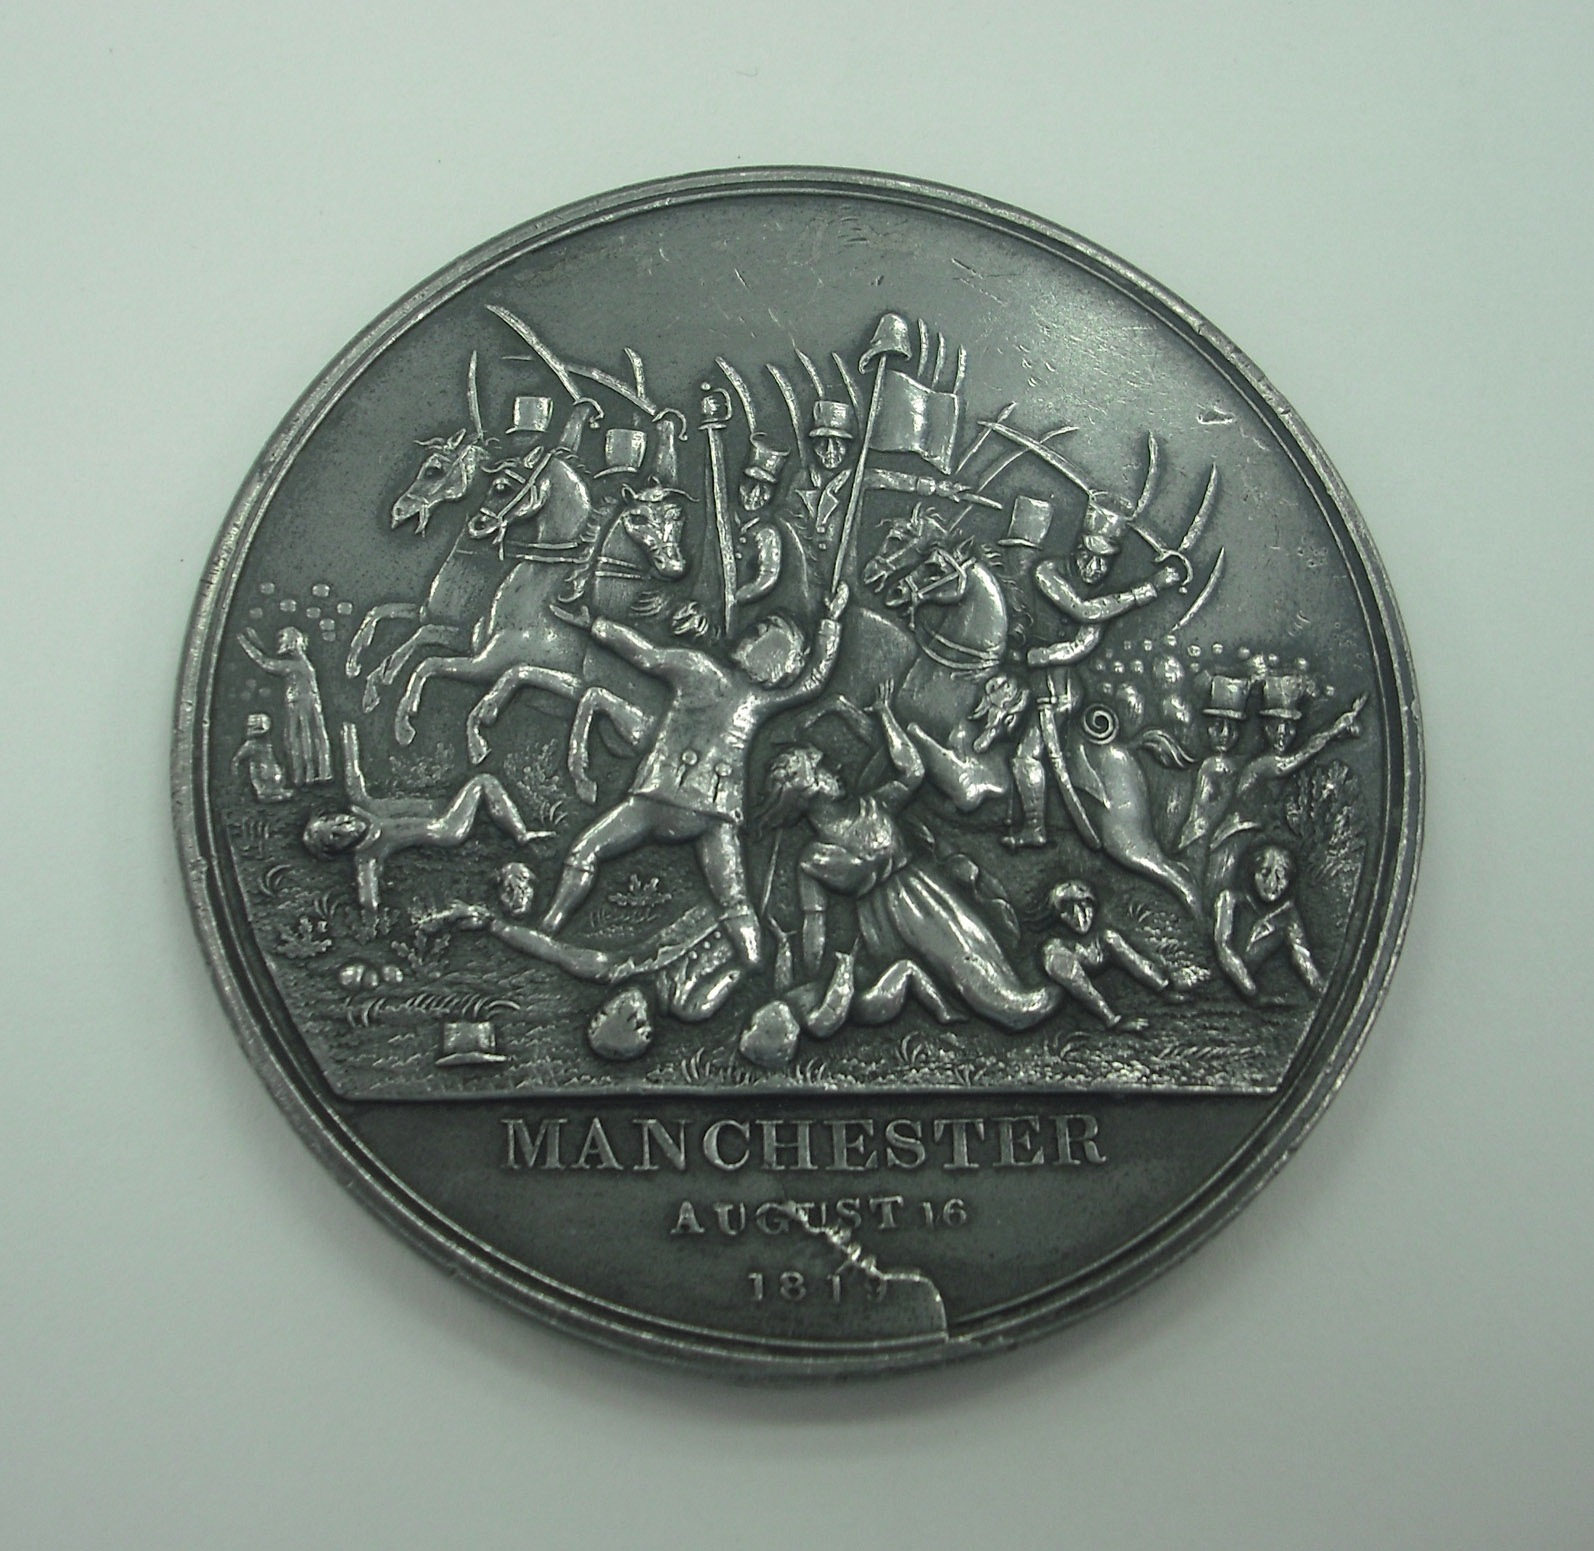 Peterloo medal 1. Photo: People's History Museum.